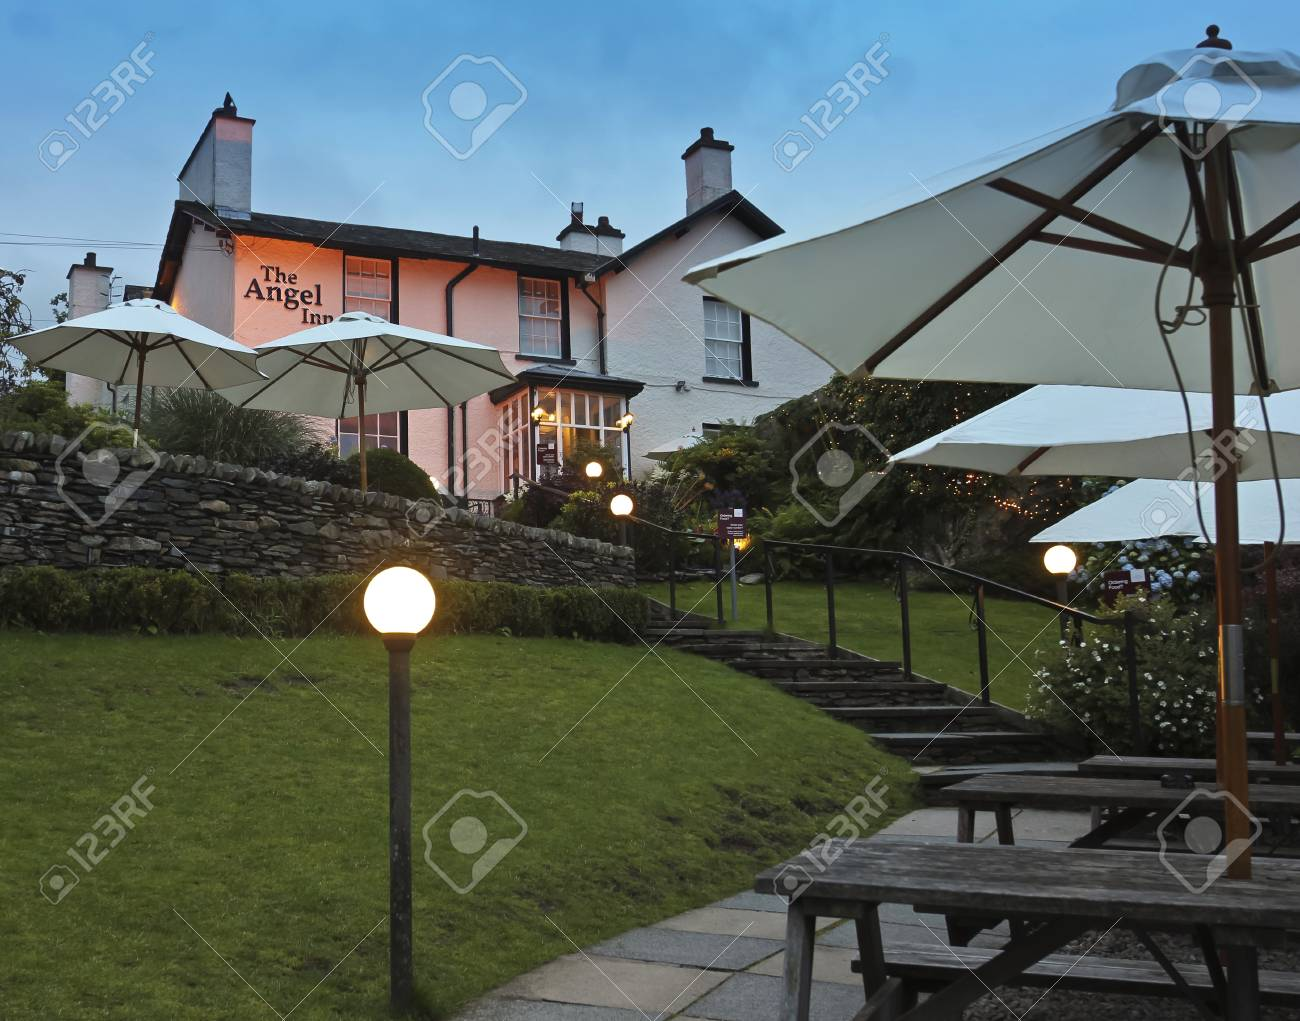 South Lakeland, Cumbria - July 22: The Angel Inn on July 22, 2012, in Bowness-on-Windermere, South Lakeland, Cumbria. This town on the banks of Lake Windermere is a tourist honeypot. Stock Photo - 15132331